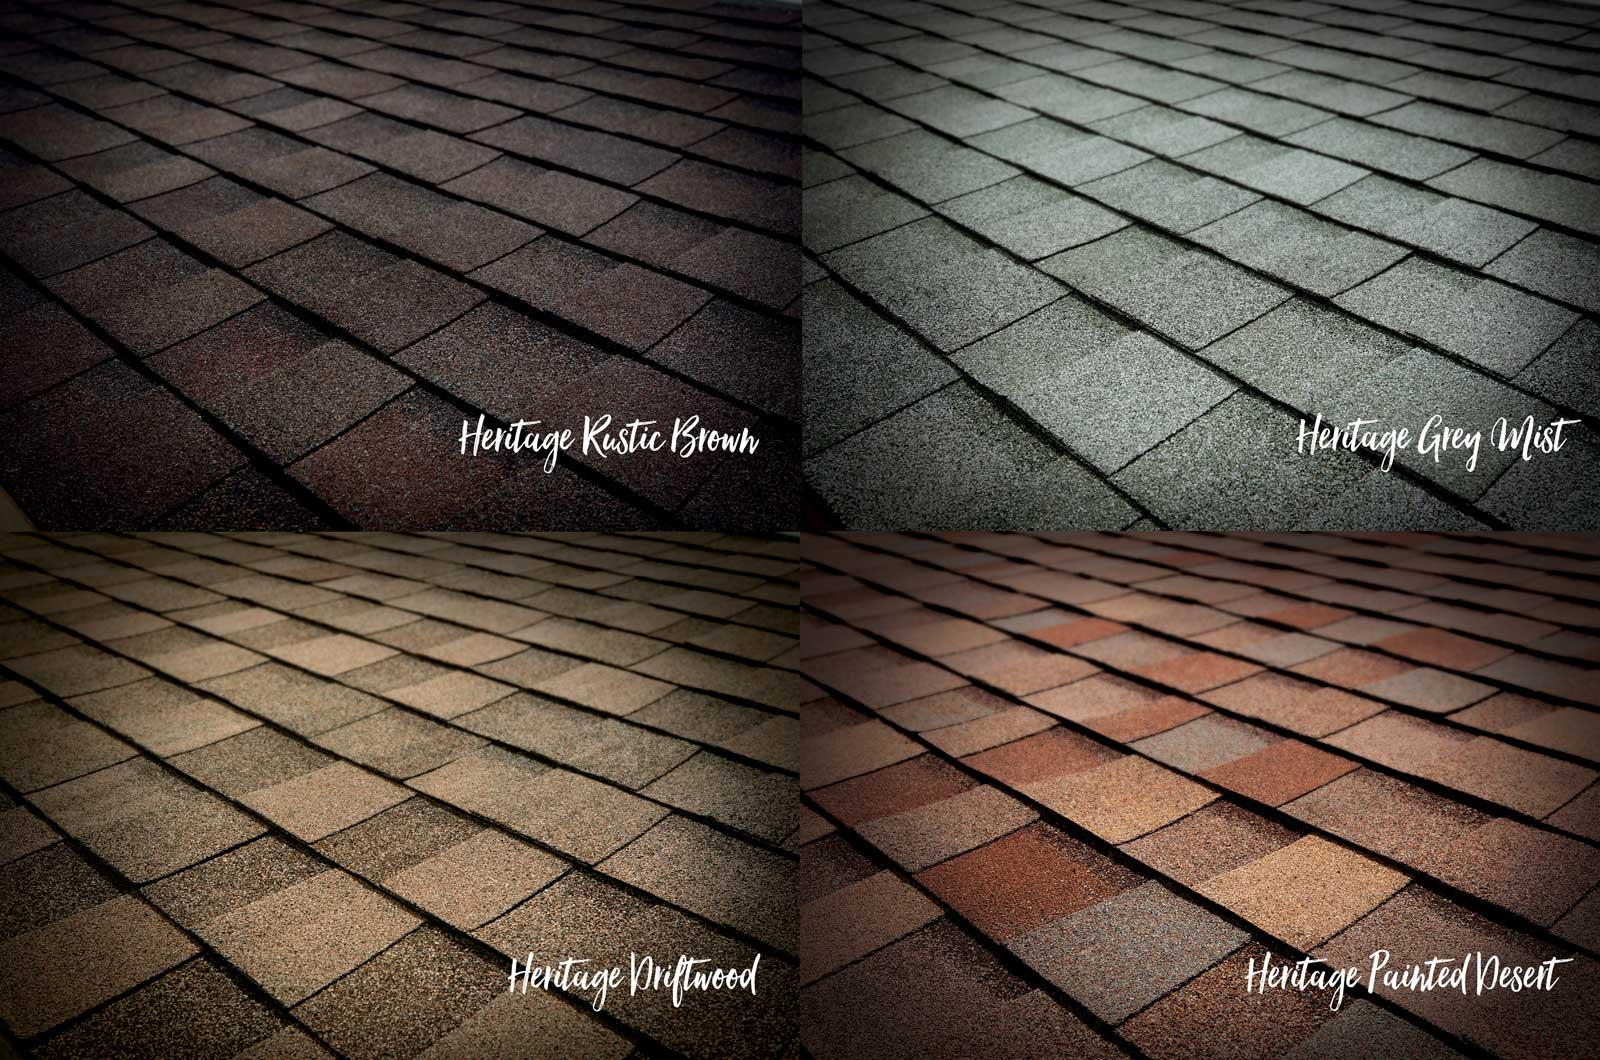 Tamko Adds New Heritage 174 Shingle Colors In Southeastern U S